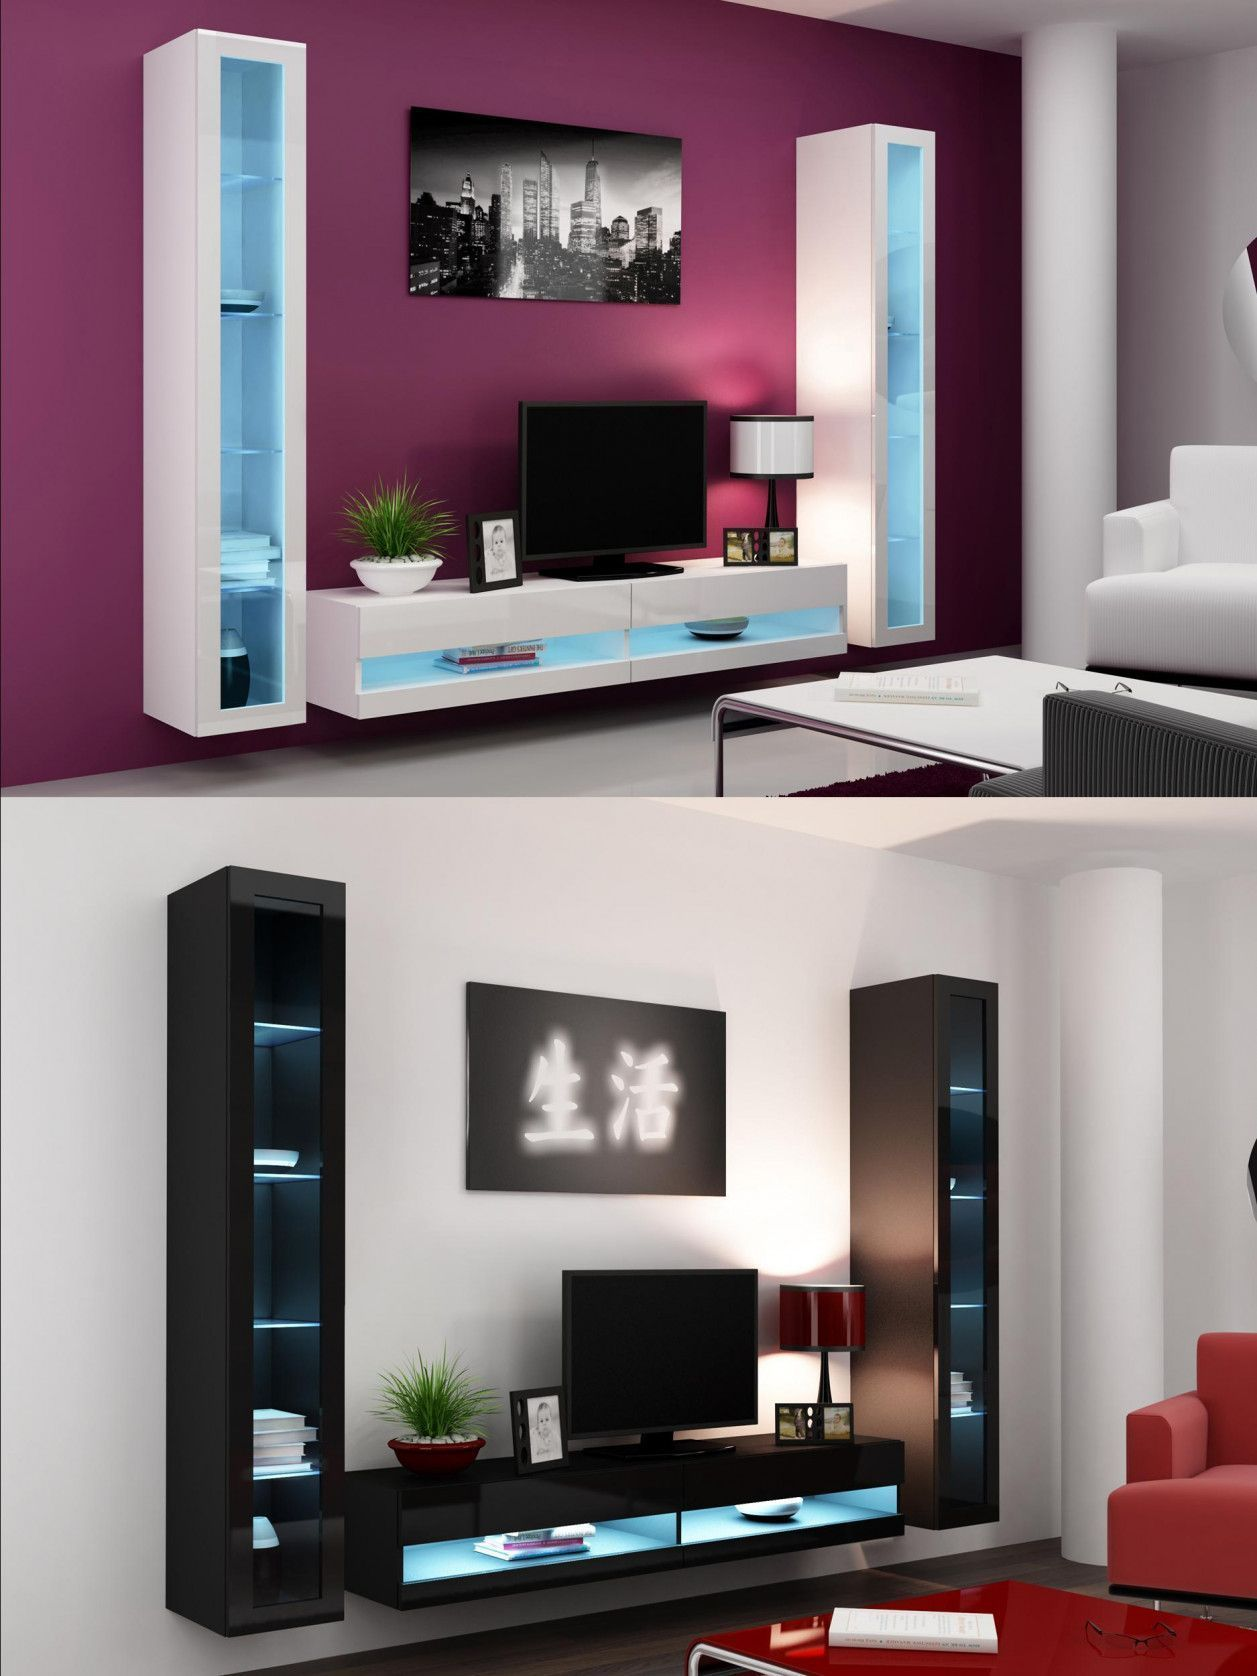 2019 Wall Mounted Tv Cabinet Kitchen Cabinets Update Ideas On A Budget Check More At Http Www Modern Tv Wall Units Wall Tv Unit Design Wall Mount Tv Stand